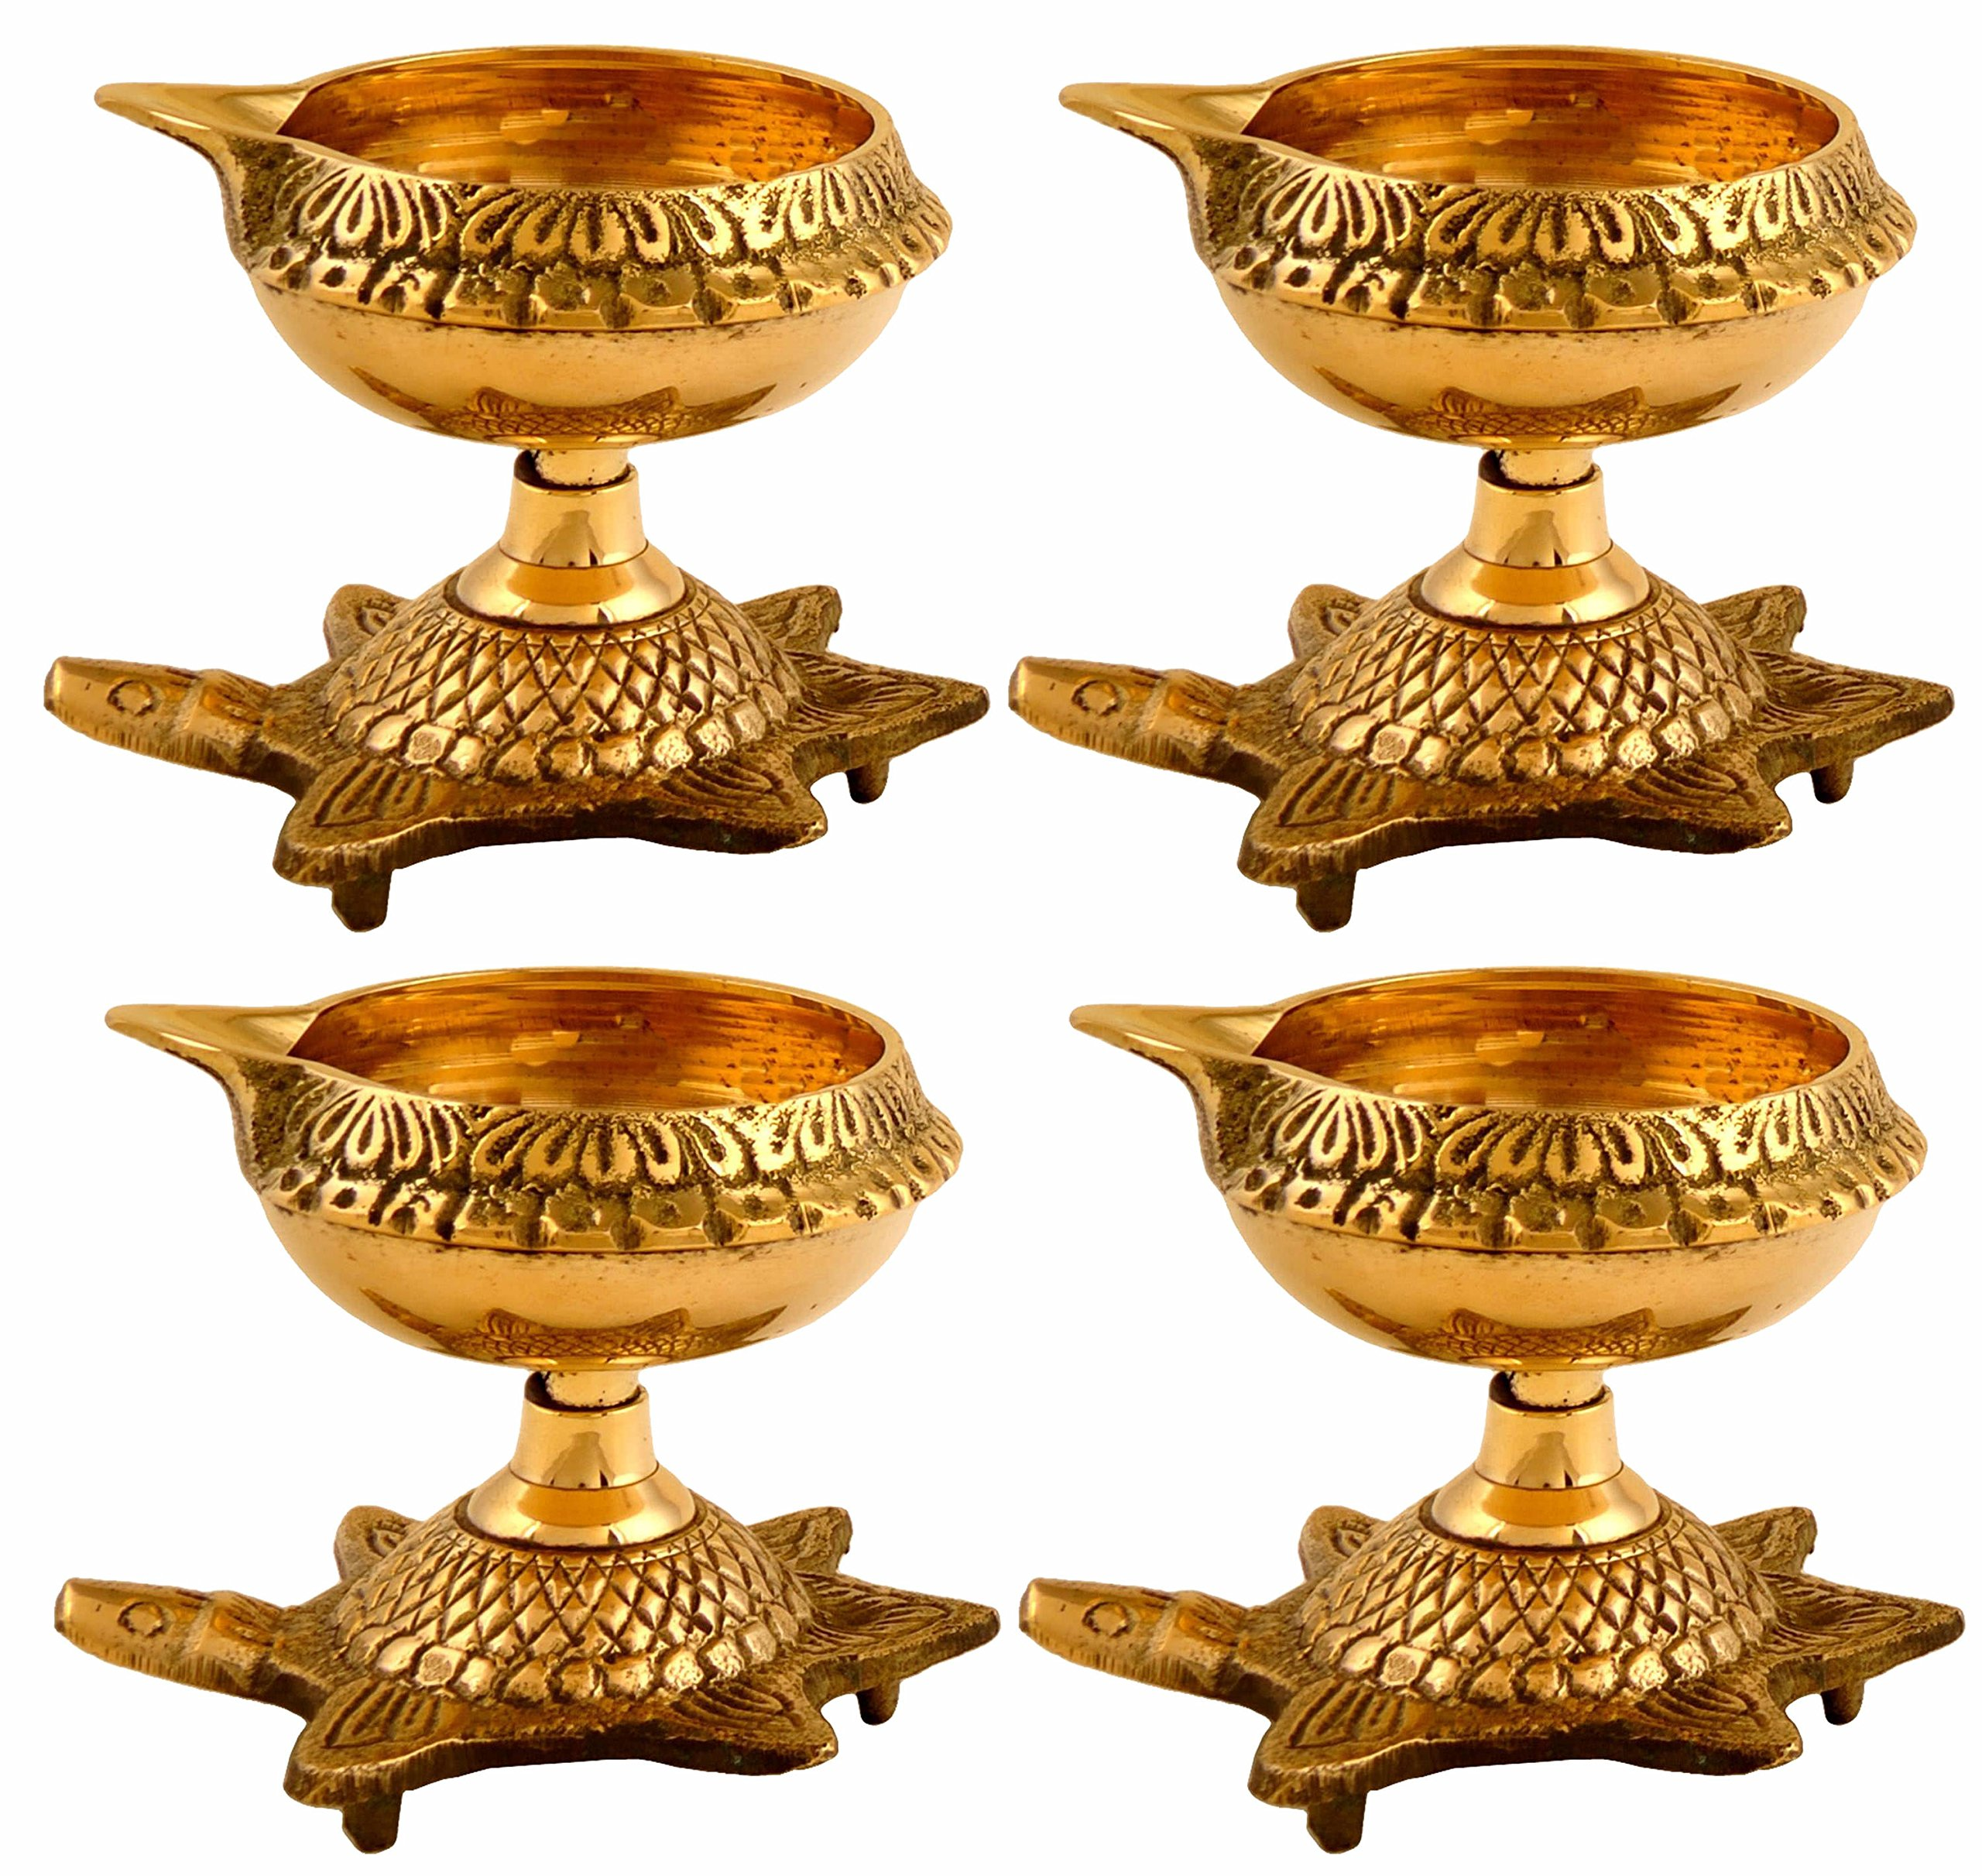 Hashcart Set of 20 Handmade Indian Puja Brass Oil Lamp - Golden Diya Lamp Engraved Design Dia with Turtle Base